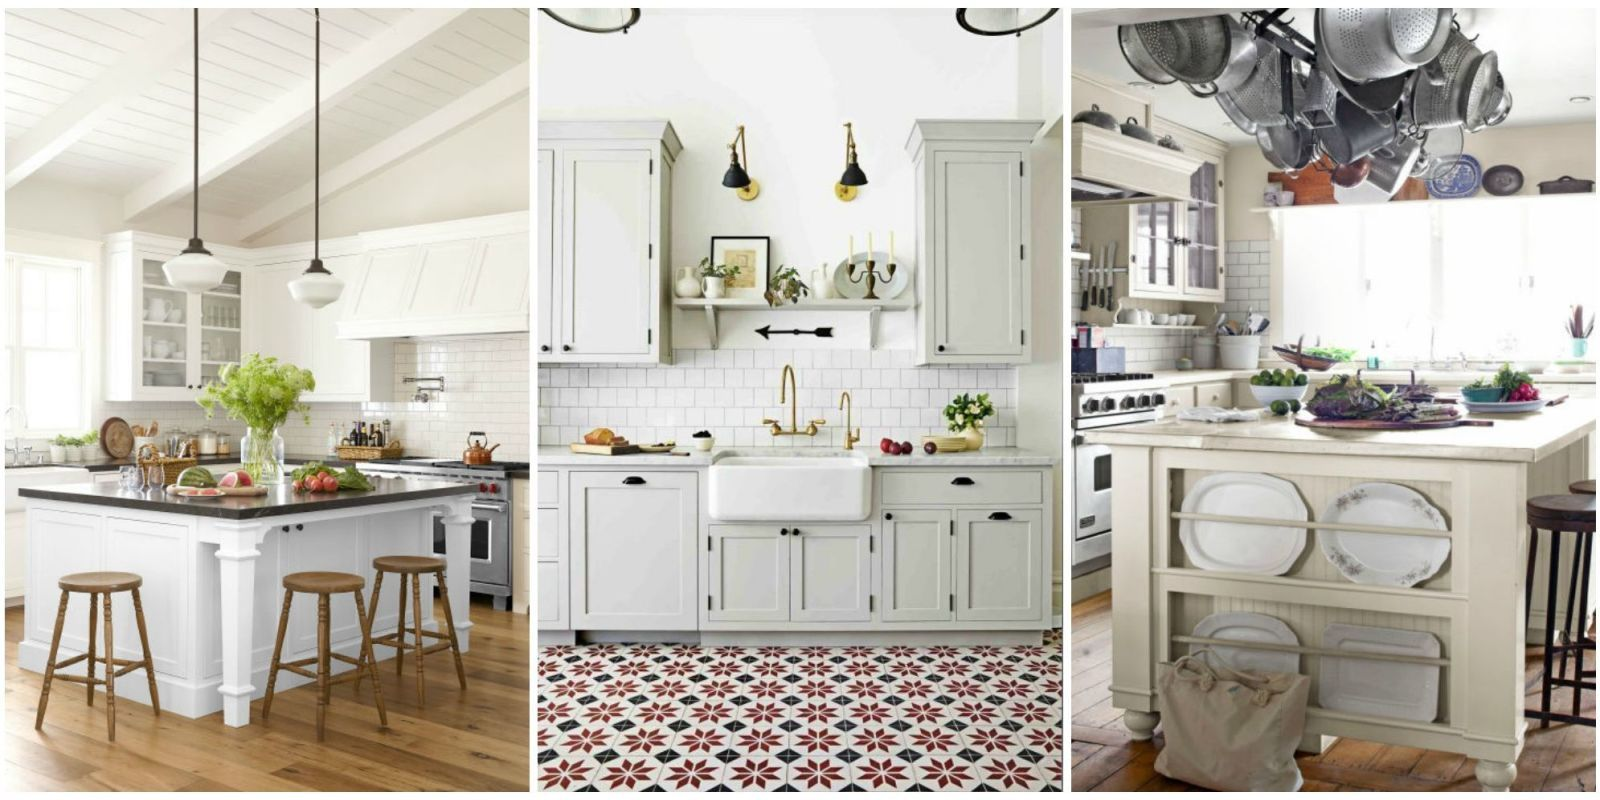 White painted kitchen cabinets before and after Maple Cabinets White Kitchen Cabinets Vnapartmentinfo 10 Best White Kitchen Cabinet Paint Colors Ideas For Kitchen With